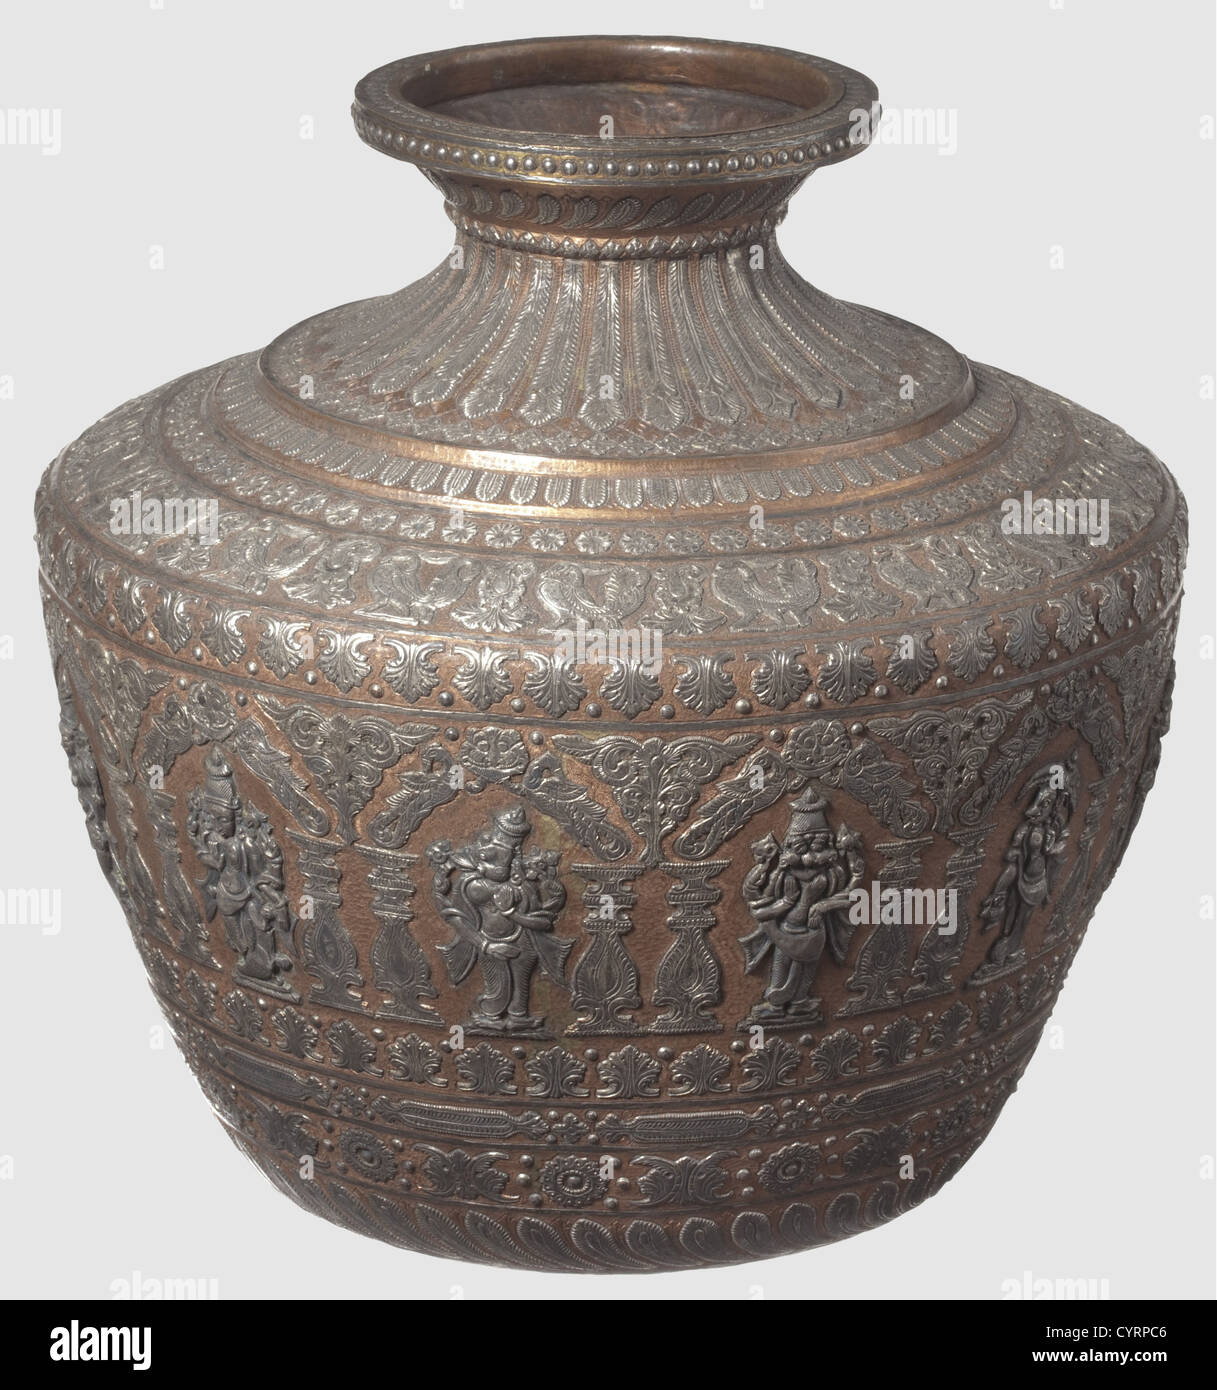 A southern Indian magnificent silver-inlaid vase, 19th century Tapered and chased body made of copper with short, - Stock Image